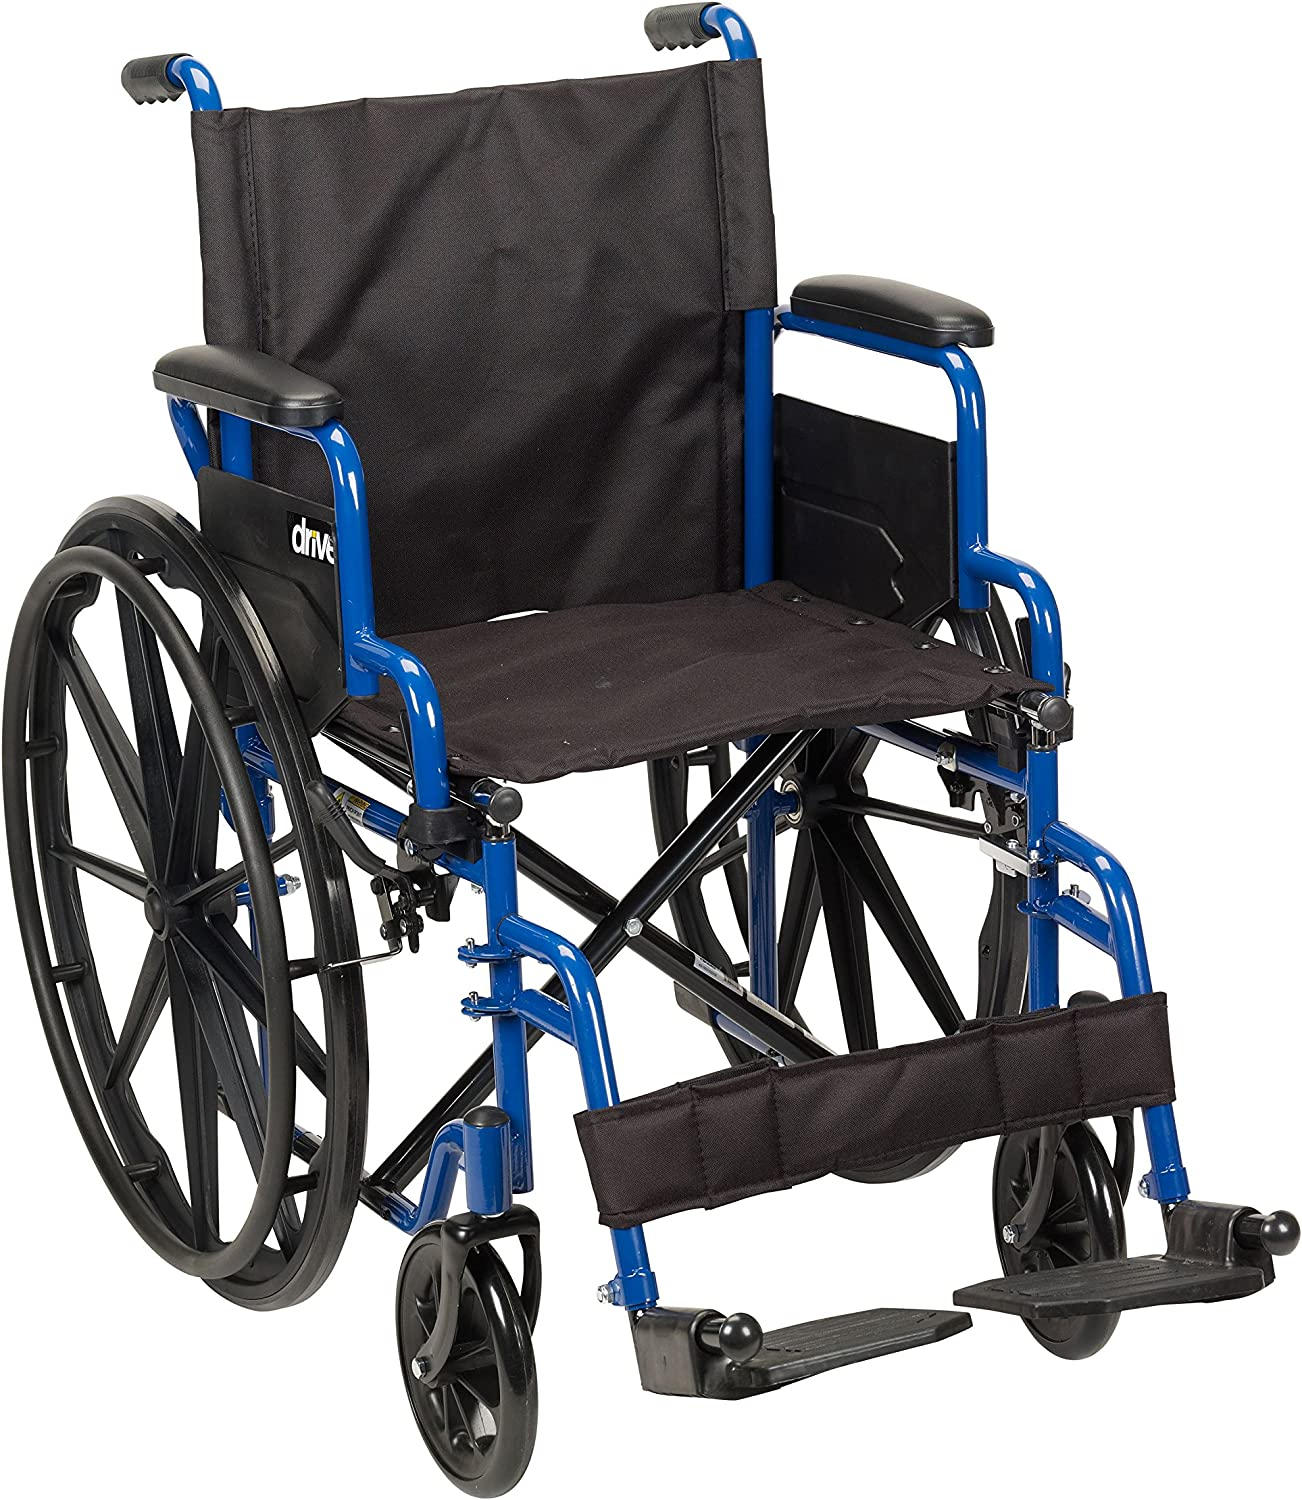 Drive Medical Blue Streak Wheelchair with Flip Back Desk Arms, Swing Away Footrests, 18 Inch Seat: Health & Personal Care